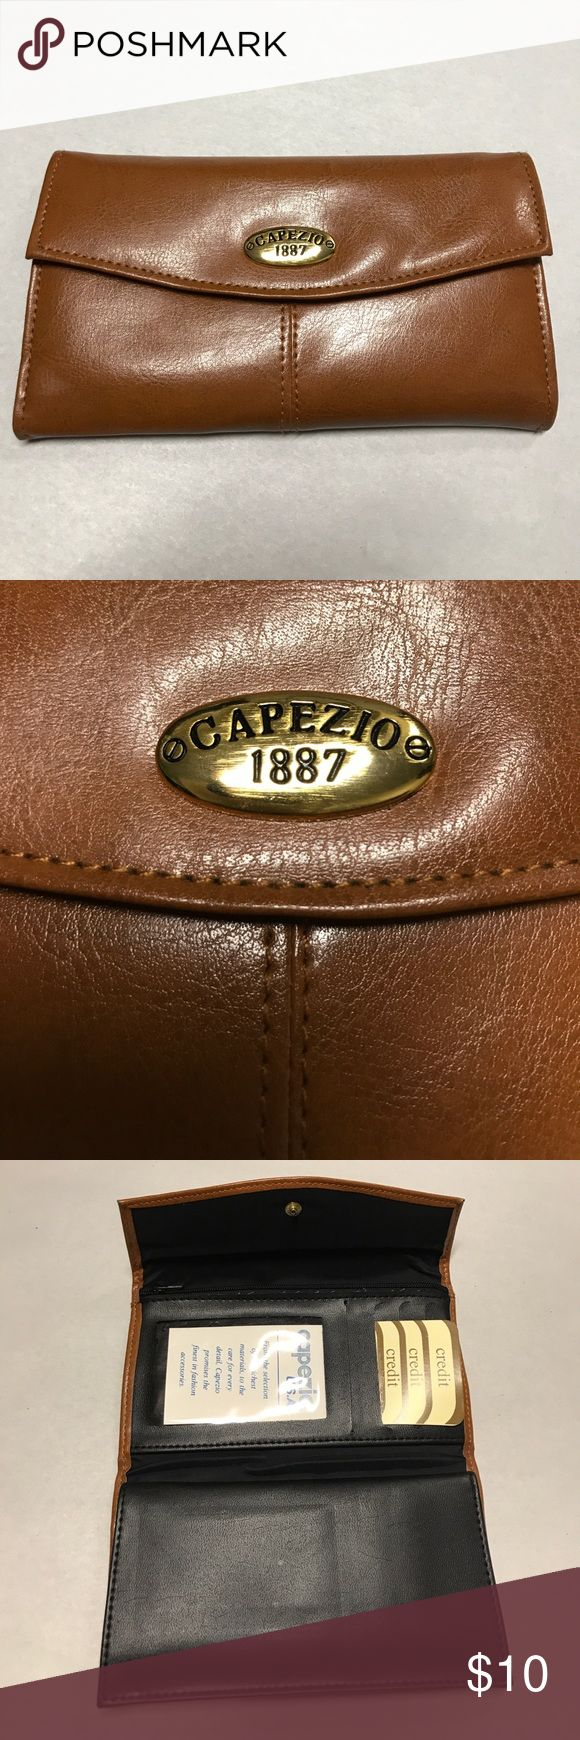 CAPEZIO BROWN LEATHER WALLET BROWN LEATHER WALLET CHECKS AND CREDIT CARDS KEEPER never used Capezio Bags Wallets